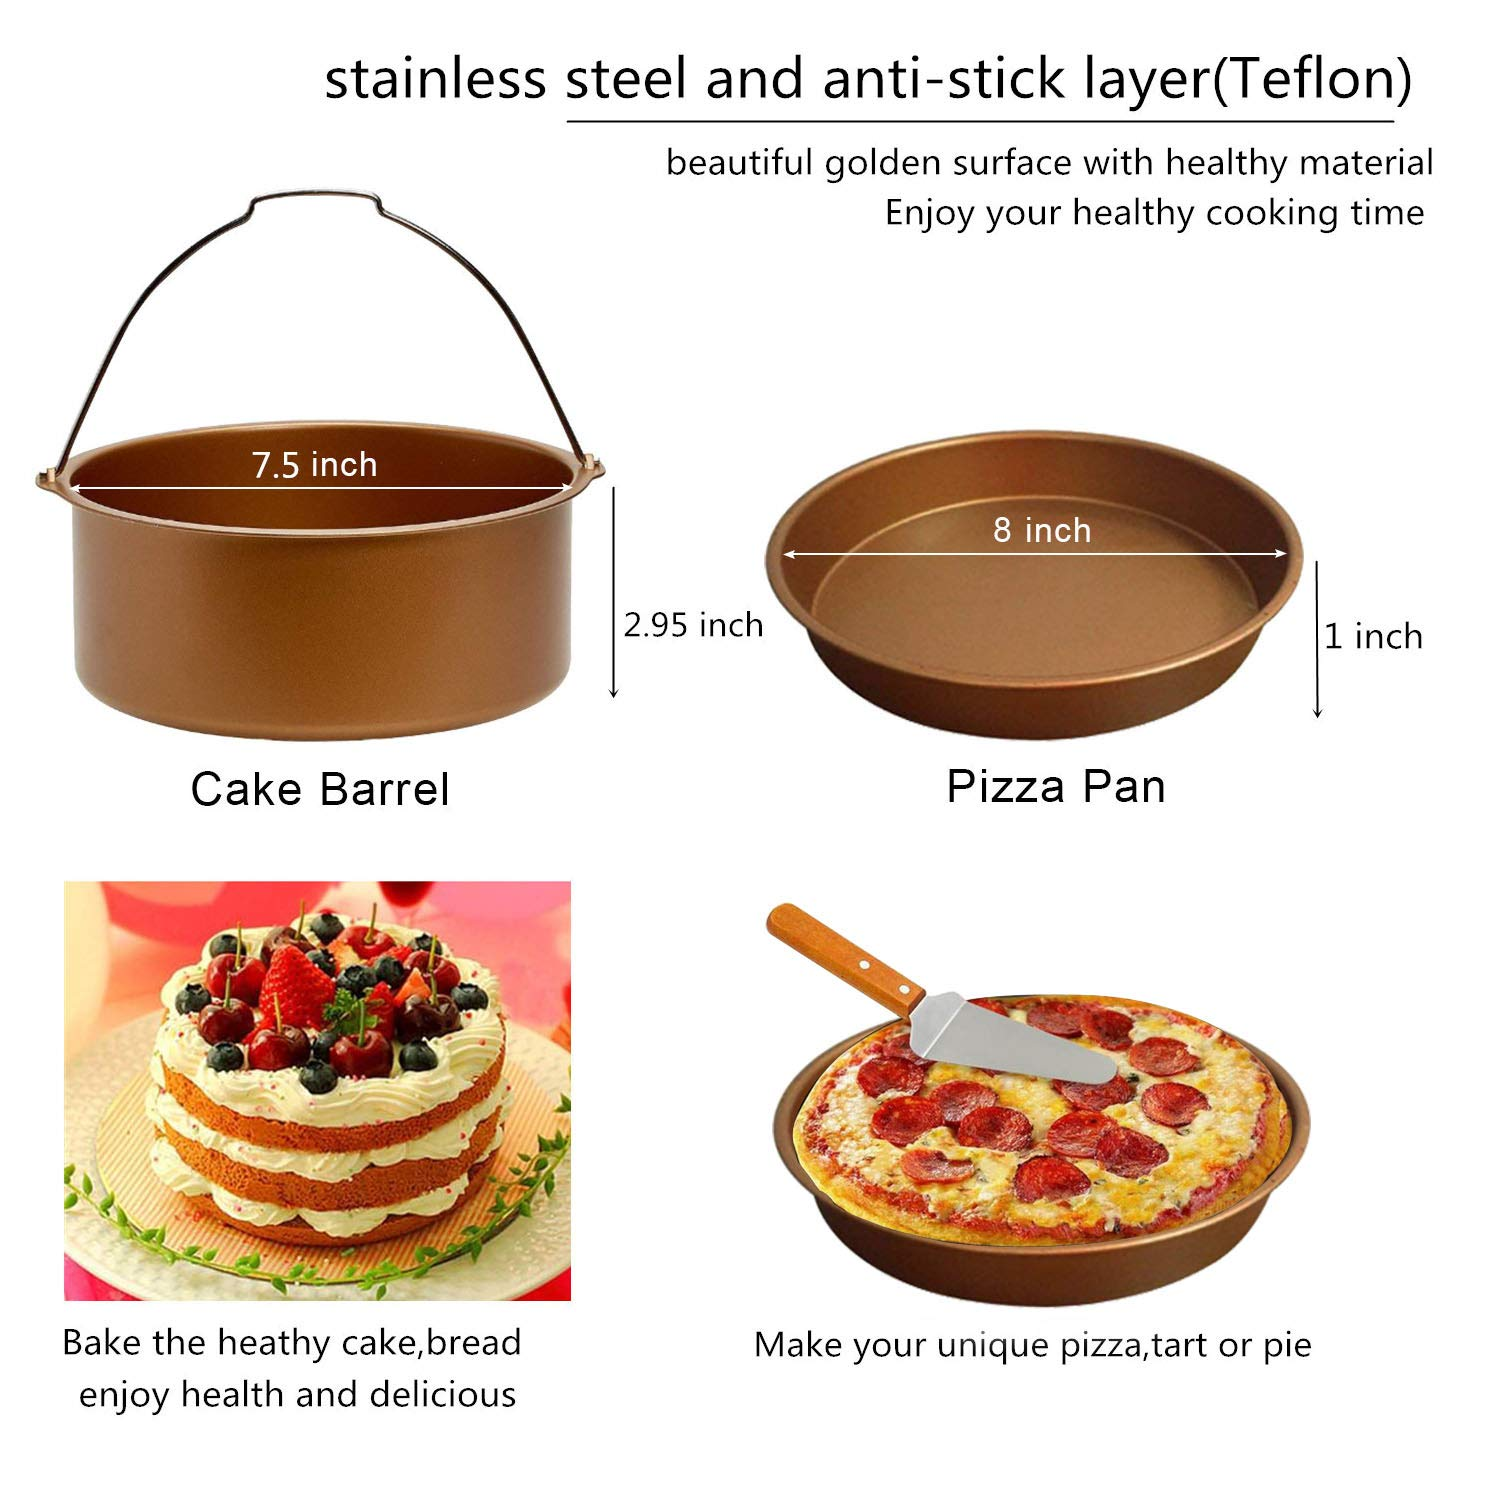 Pizza Pan Air Fryer Accessories 8 inch XL,for Gowise Phillips Cozyna Ninja 4.2QT to 6.8 QT with Recipe Cookbook Rust Proof Golden Cake Barrel 14pcs Silicone Oil Brush Mat,Baking Cups.etc